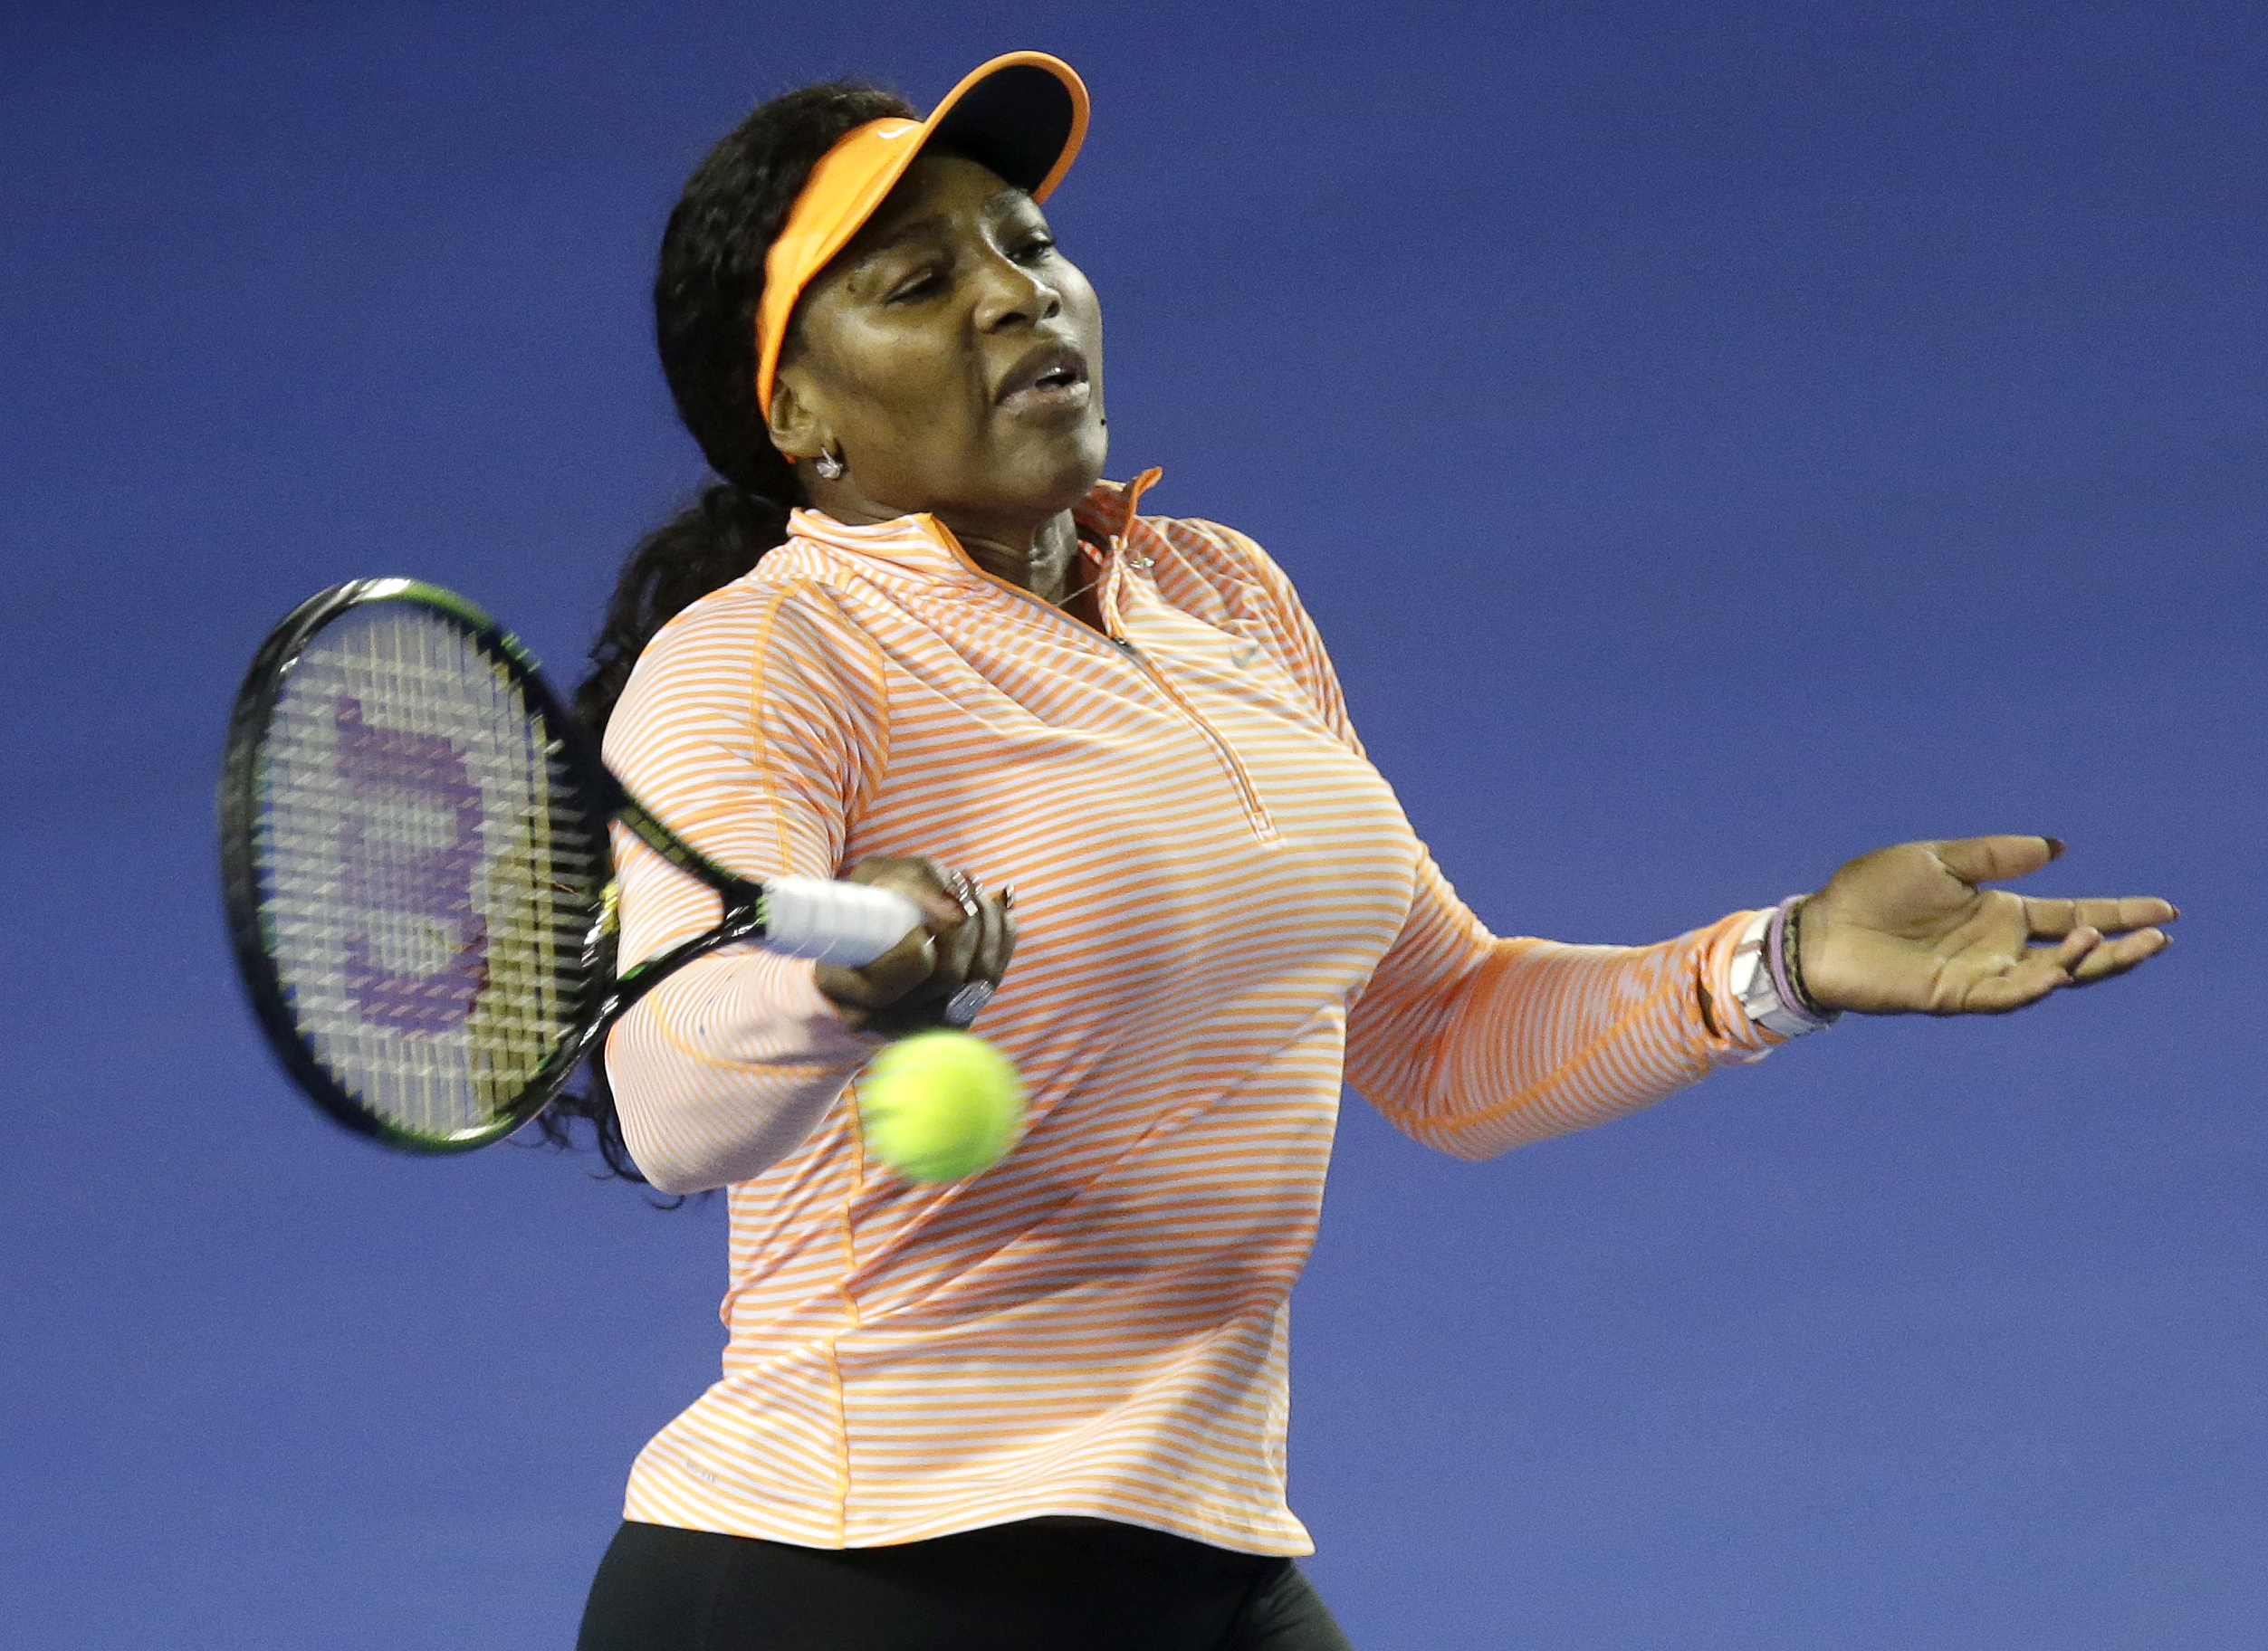 Serena Williams of the US hits a forehand return during a practice session on Rod Laver Arena ahead of the Australian Open tennis championships in Melbourne, Australia, Thursday, Jan. 14, 2016.(AP Photo/Mark Baker)